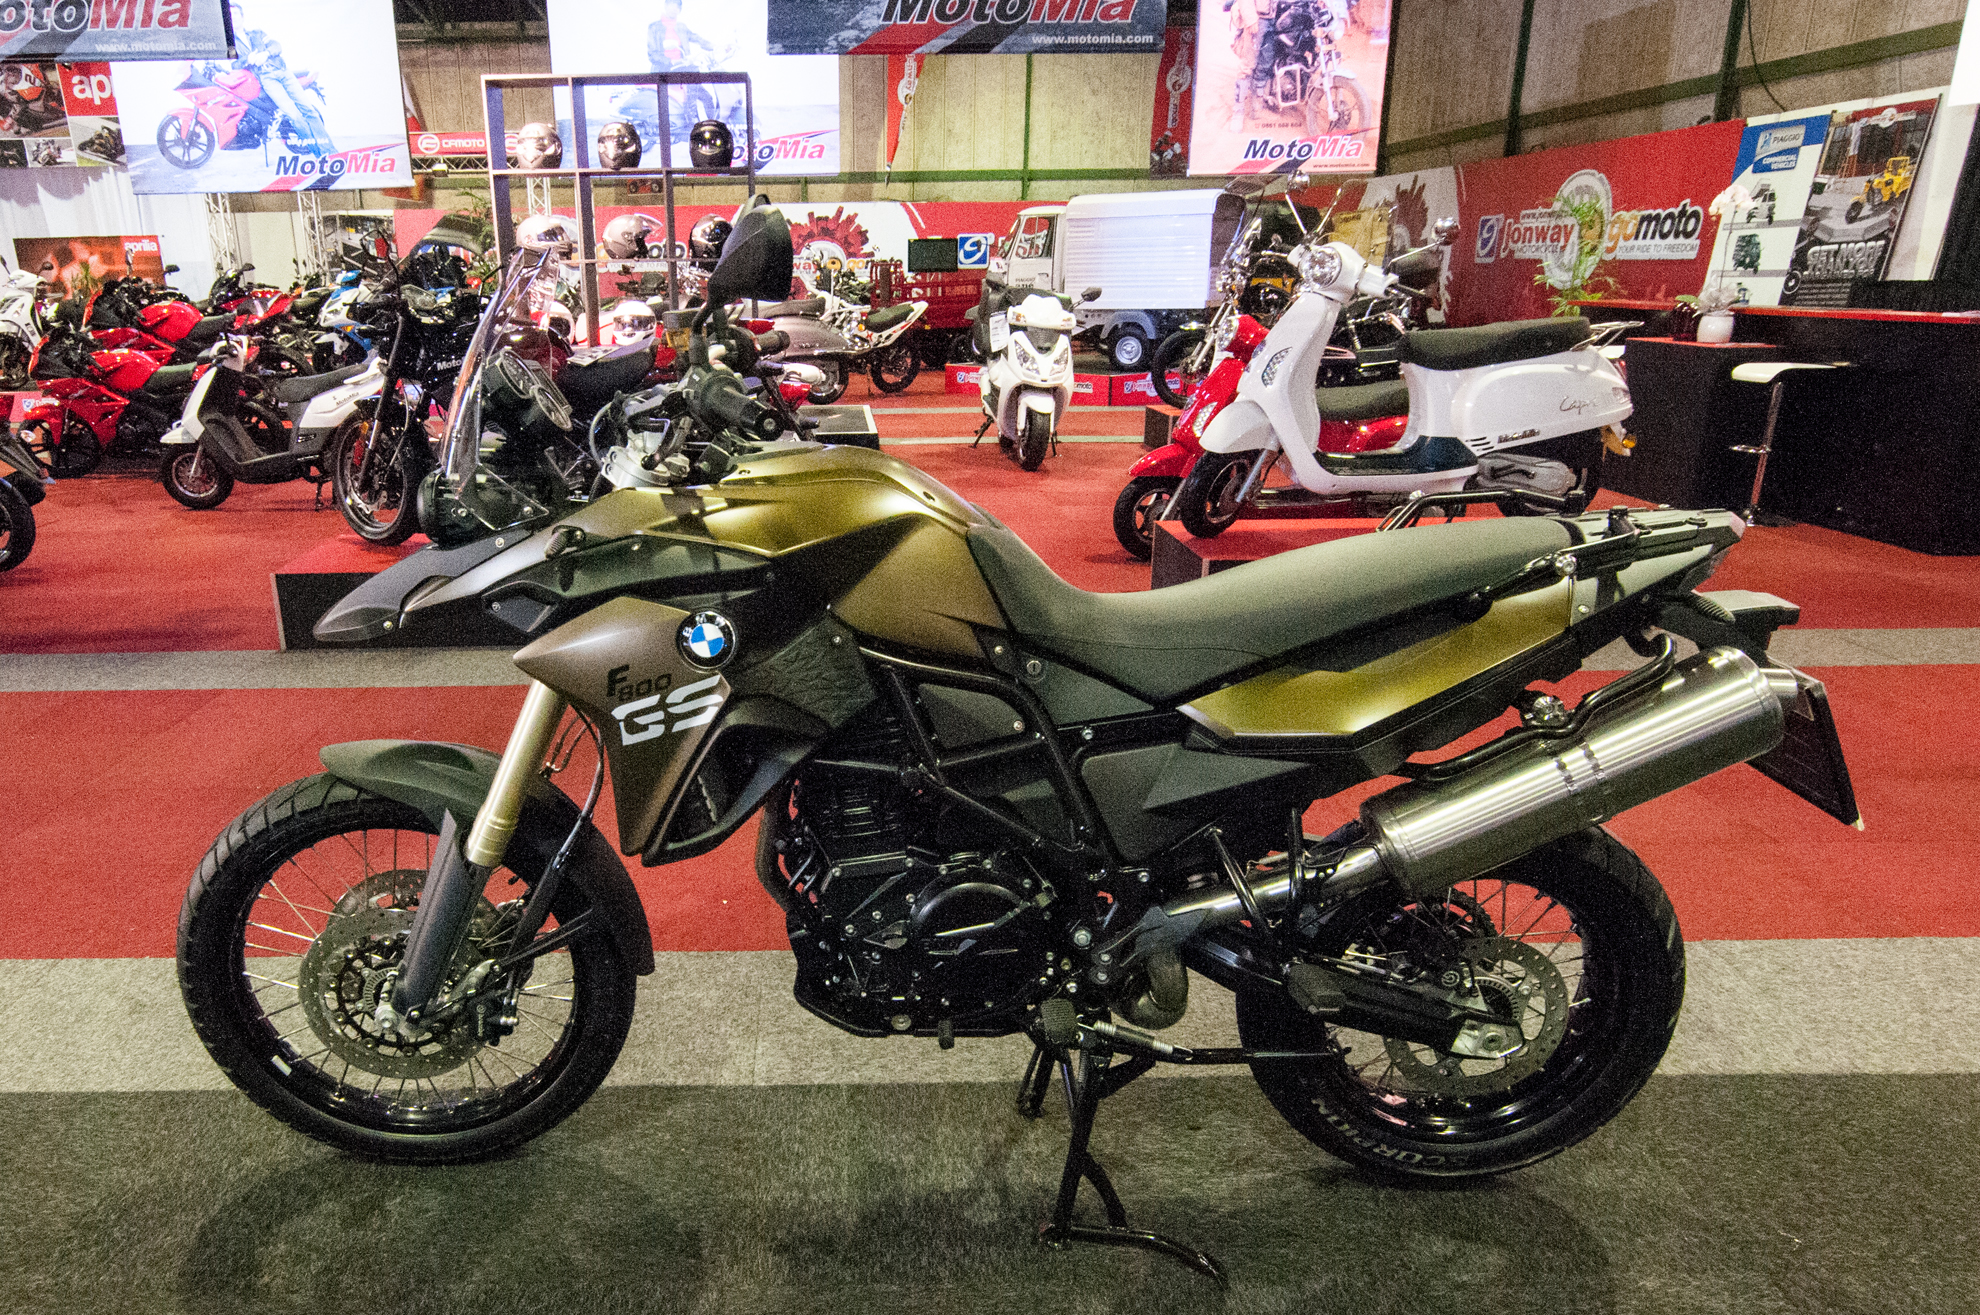 BMW Motorcycle Show